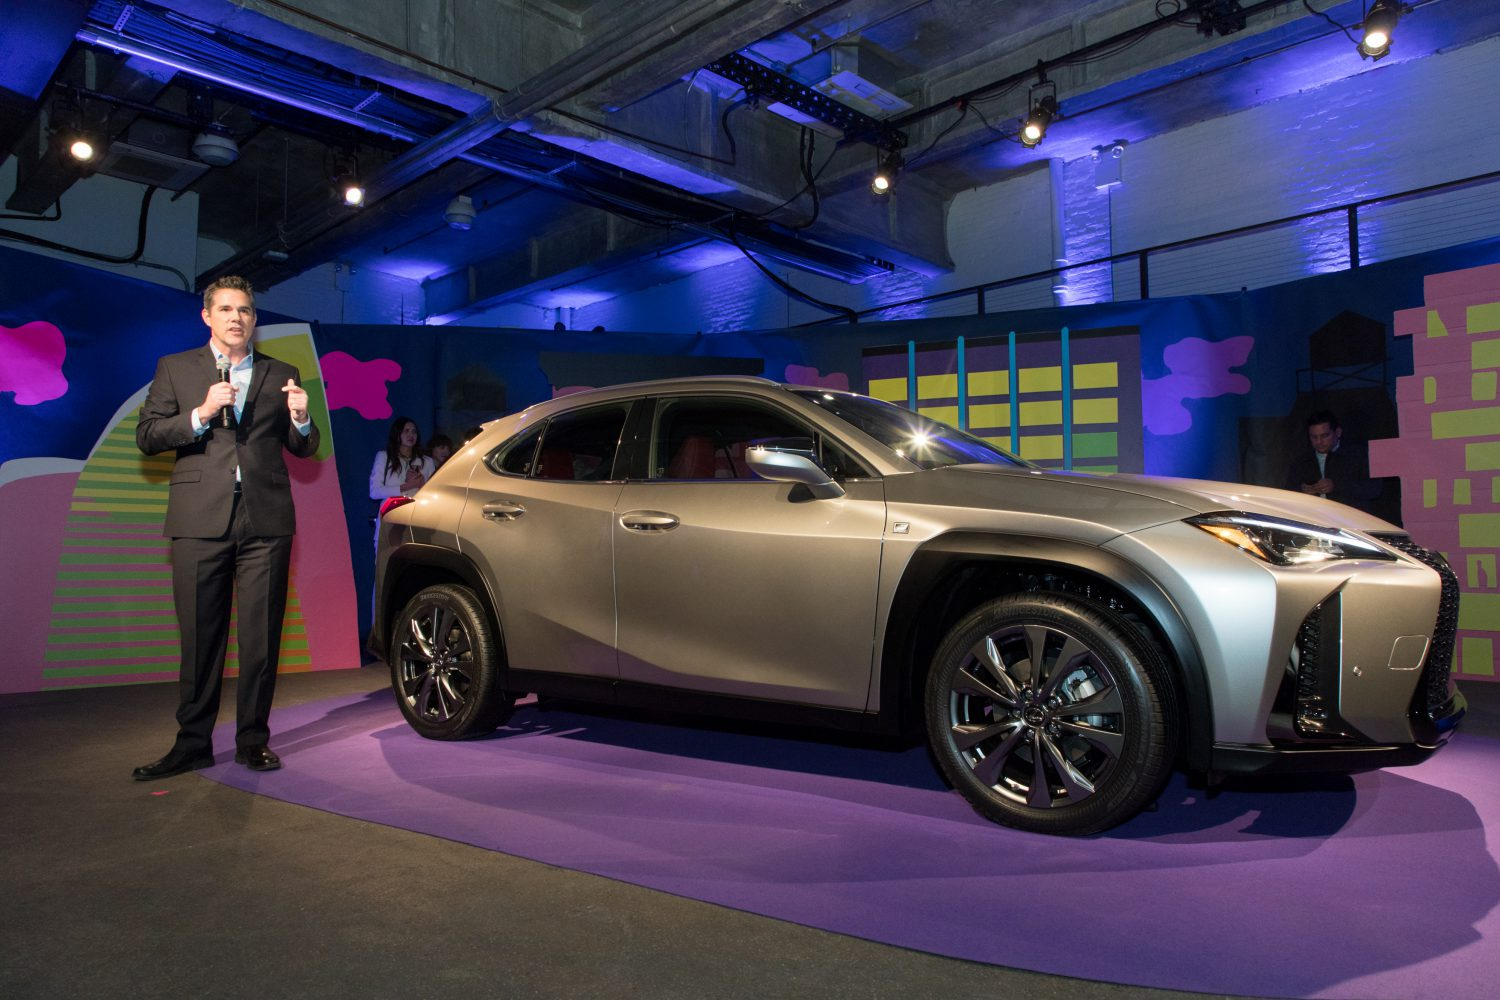 2018 Lexus UX: News, Design, Hybrid, Arrival >> First Ever Lexus Ux Compact Luxury Crossover Makes North